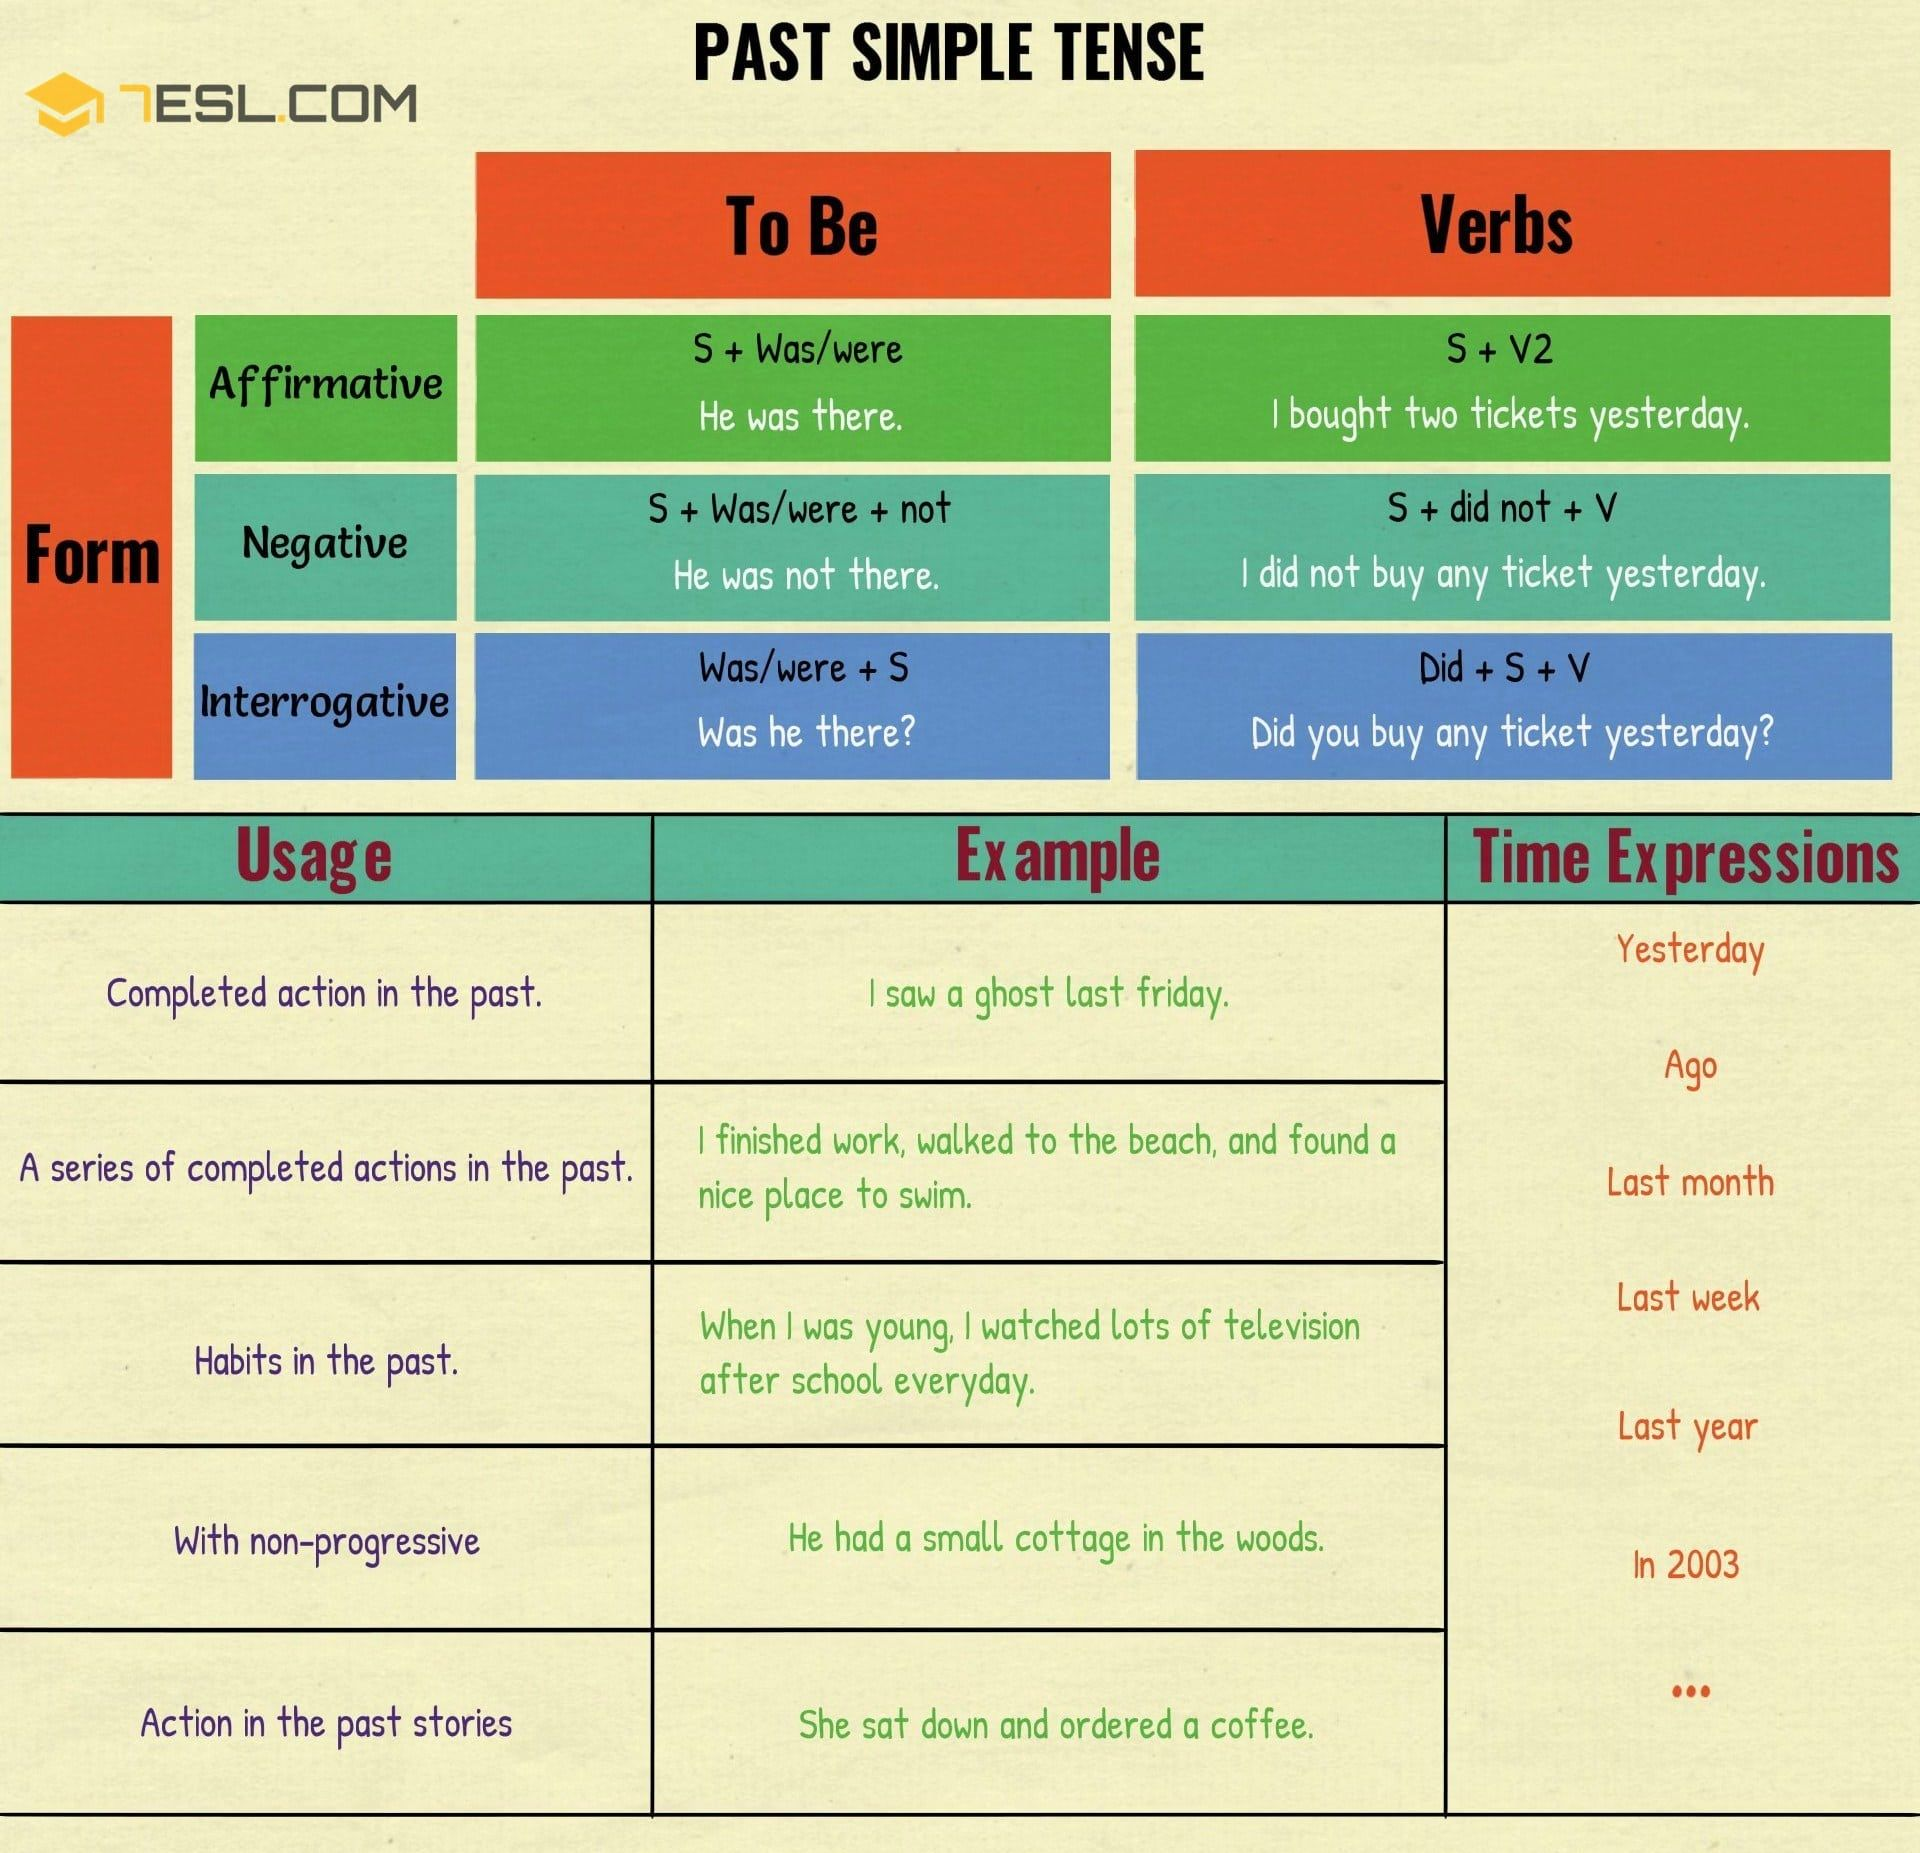 Past Simple Tense Useful Rules And Examples